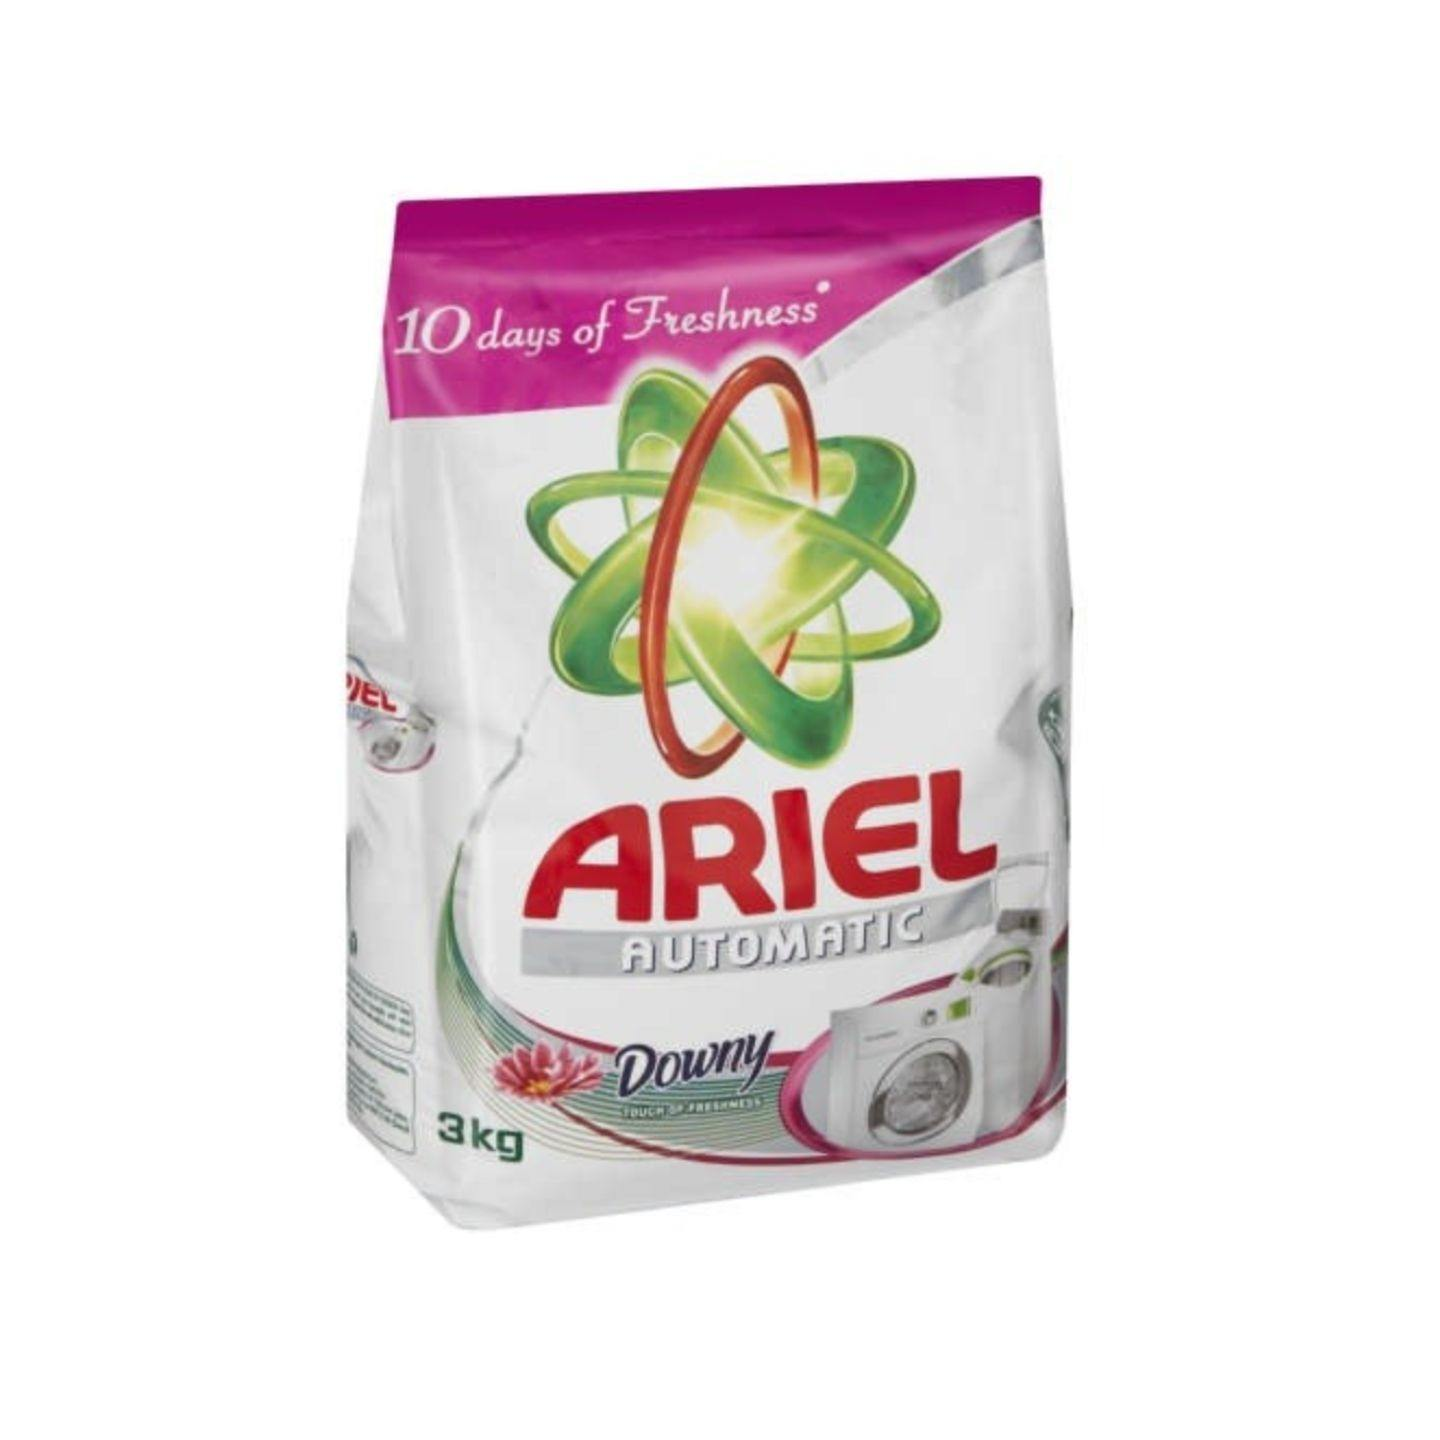 Ariel Detergent Washing Powder 2キロ4キロ5キロ